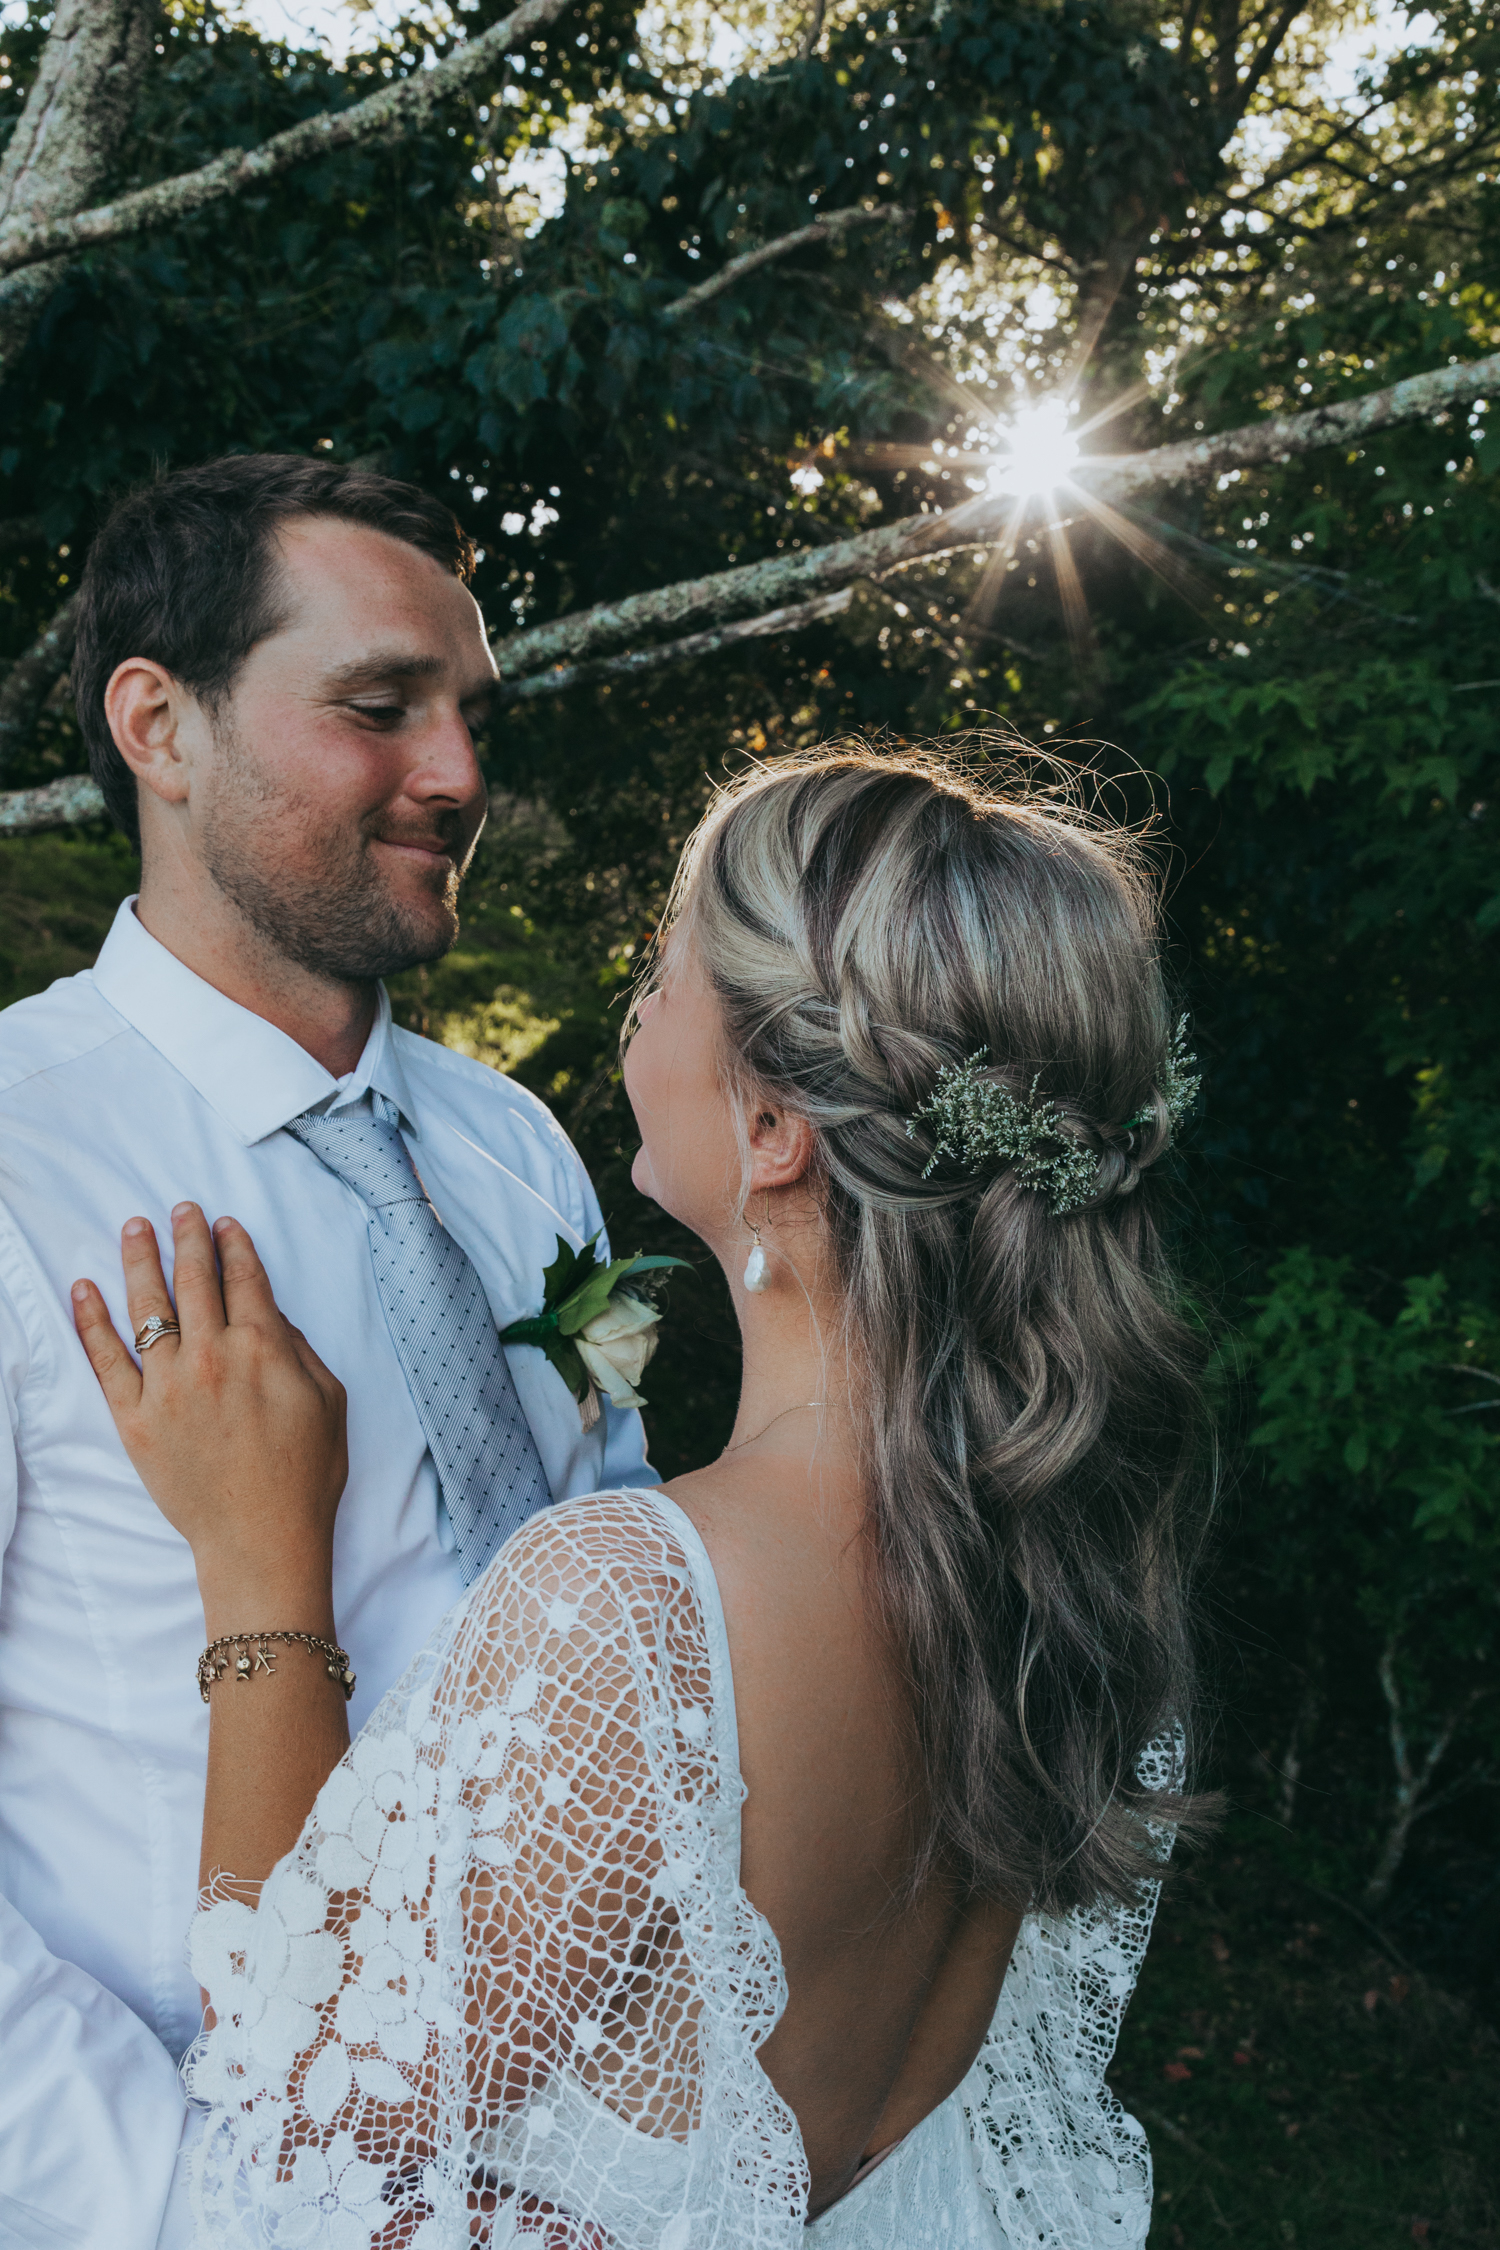 waikato-new-zealand-wedding-photographer-summer-rural-wedding-grace-loves-lace-dress-bride-and-groom-in-sunshine.jpg